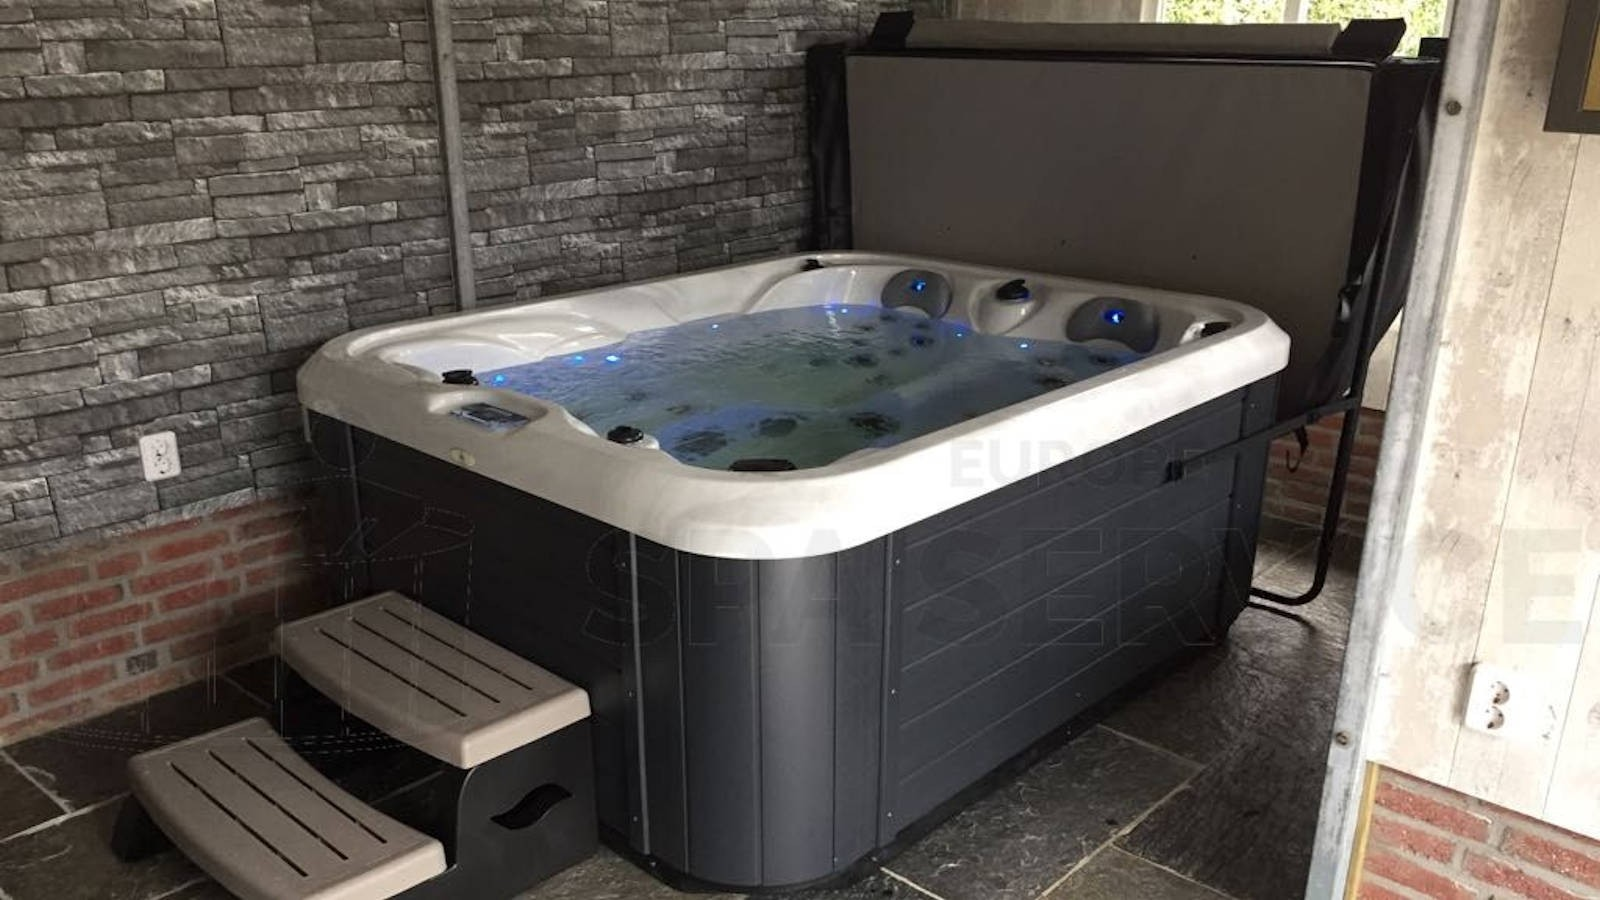 Plaatsing Allseas Daydream DS 101 spa in Ossendrecht